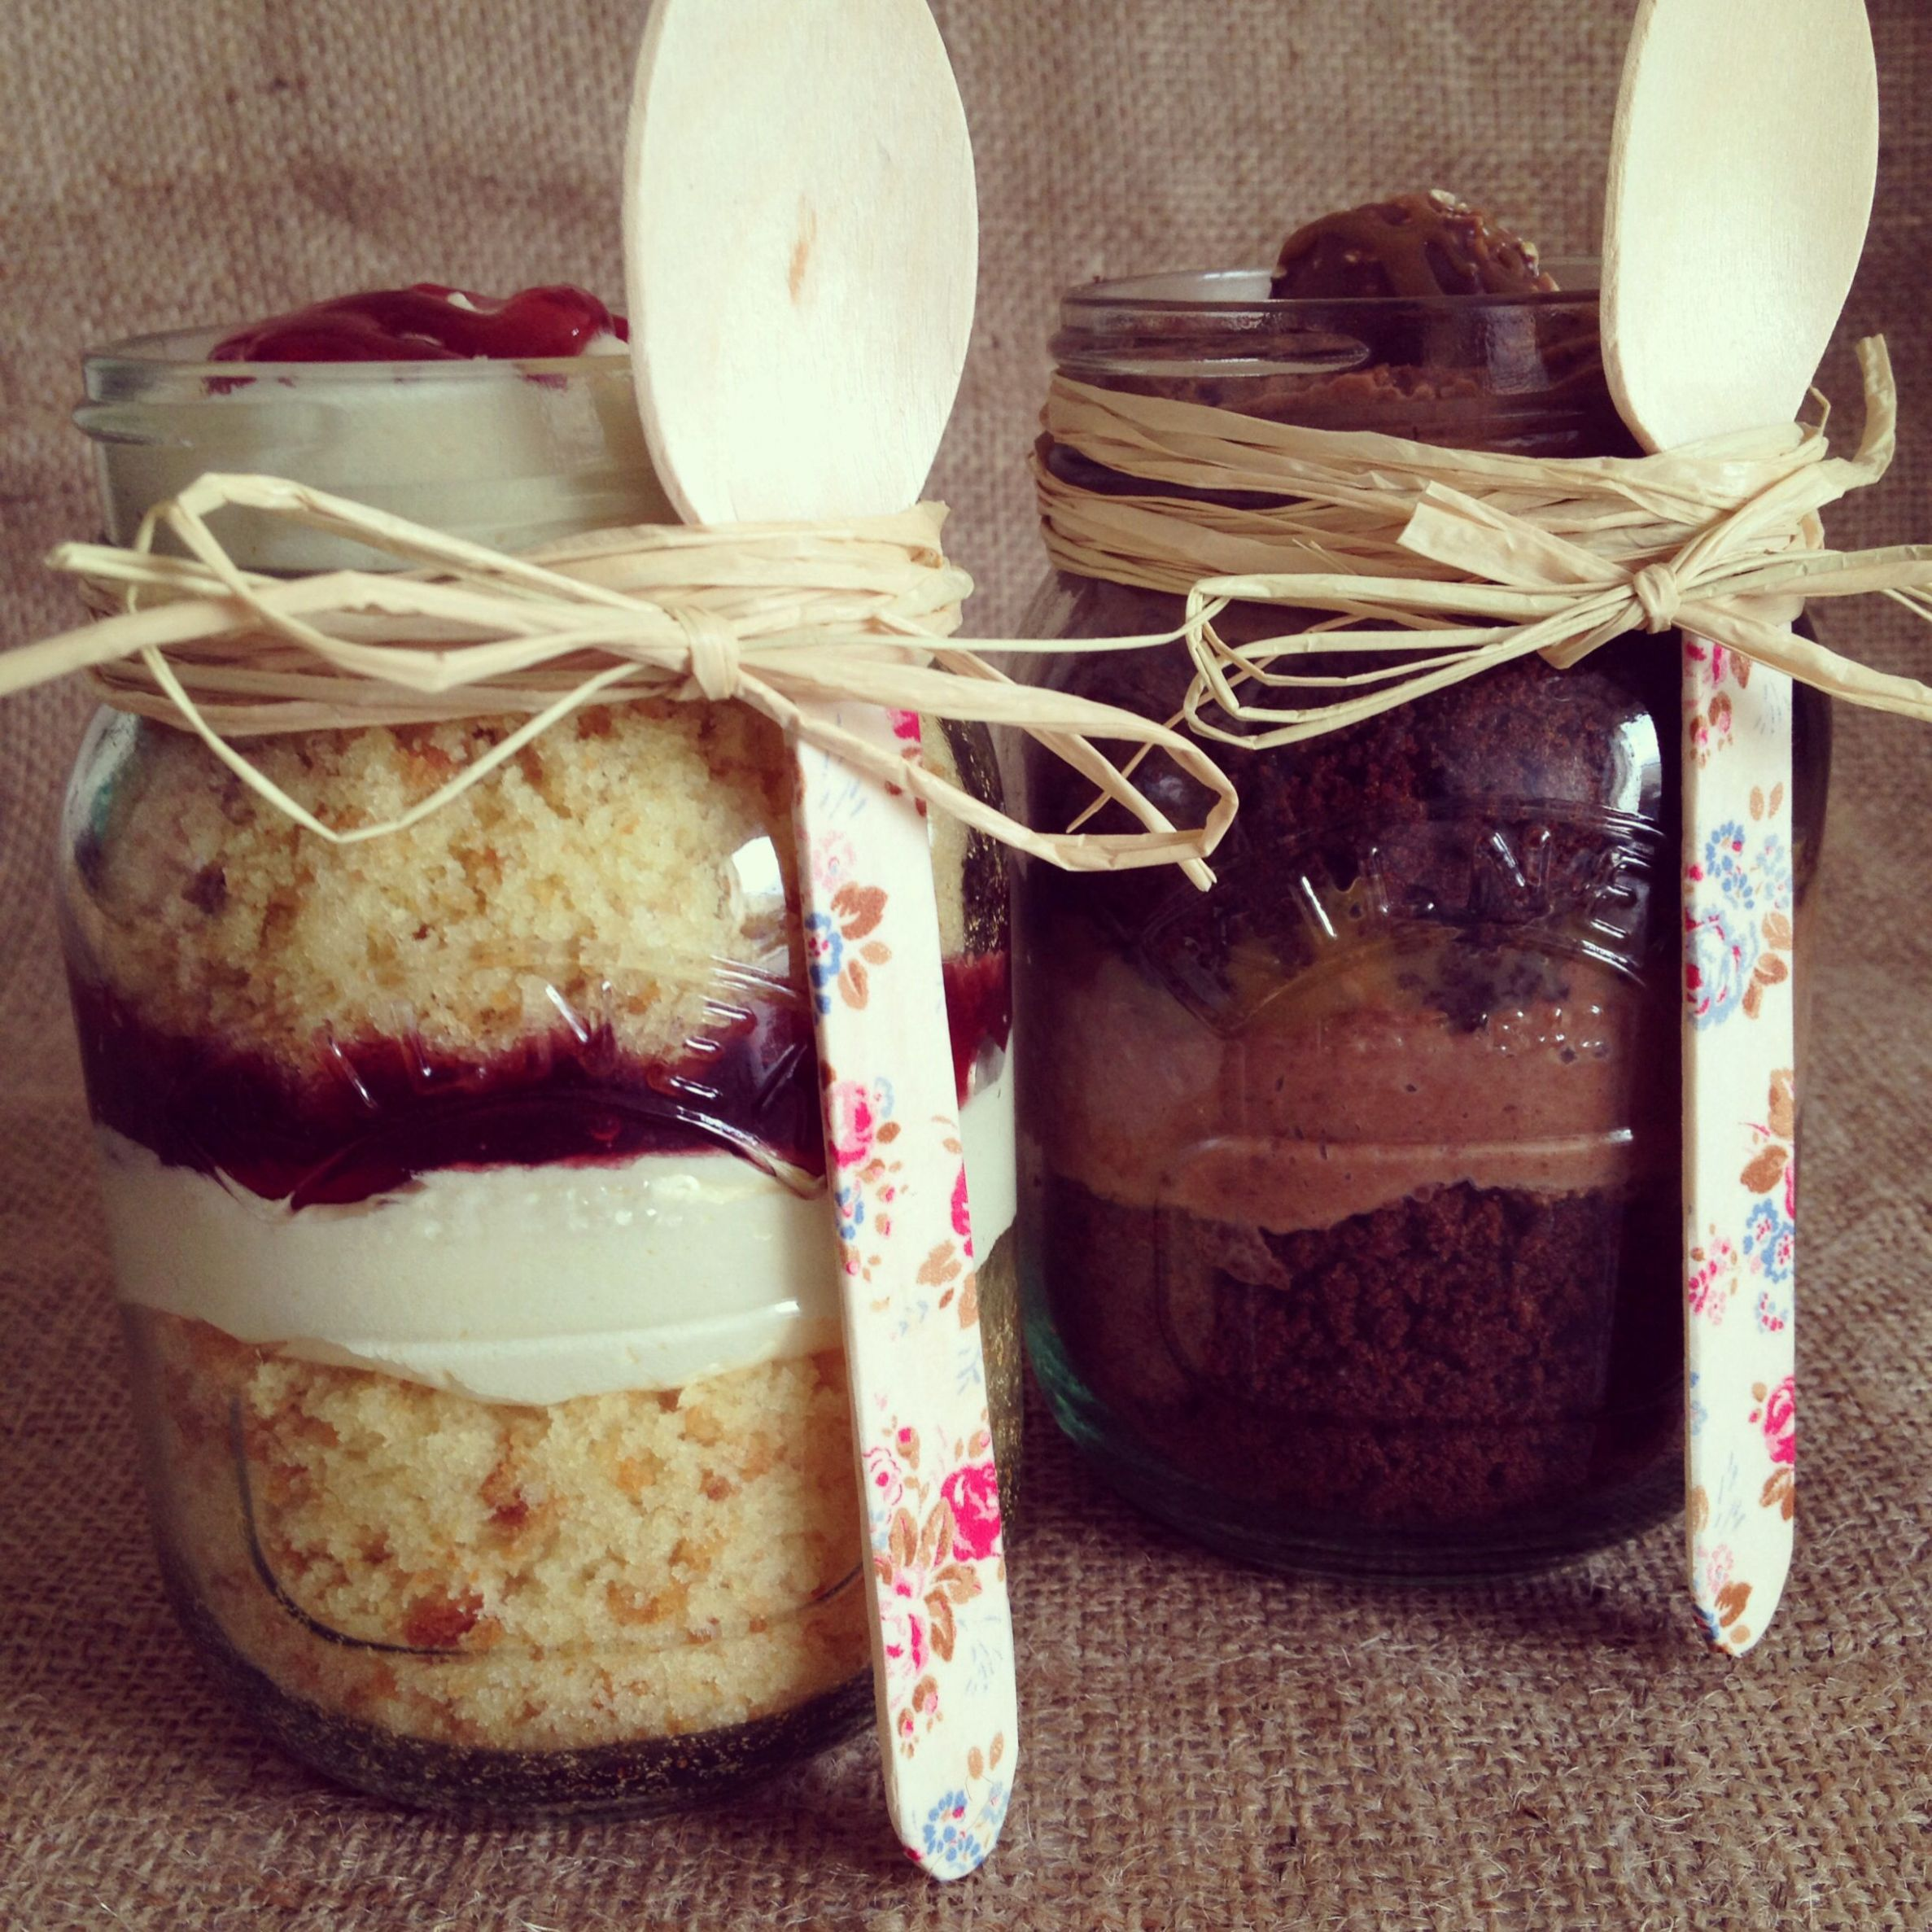 Top 9 Kilner Jar Uses | Cake stall, Baking